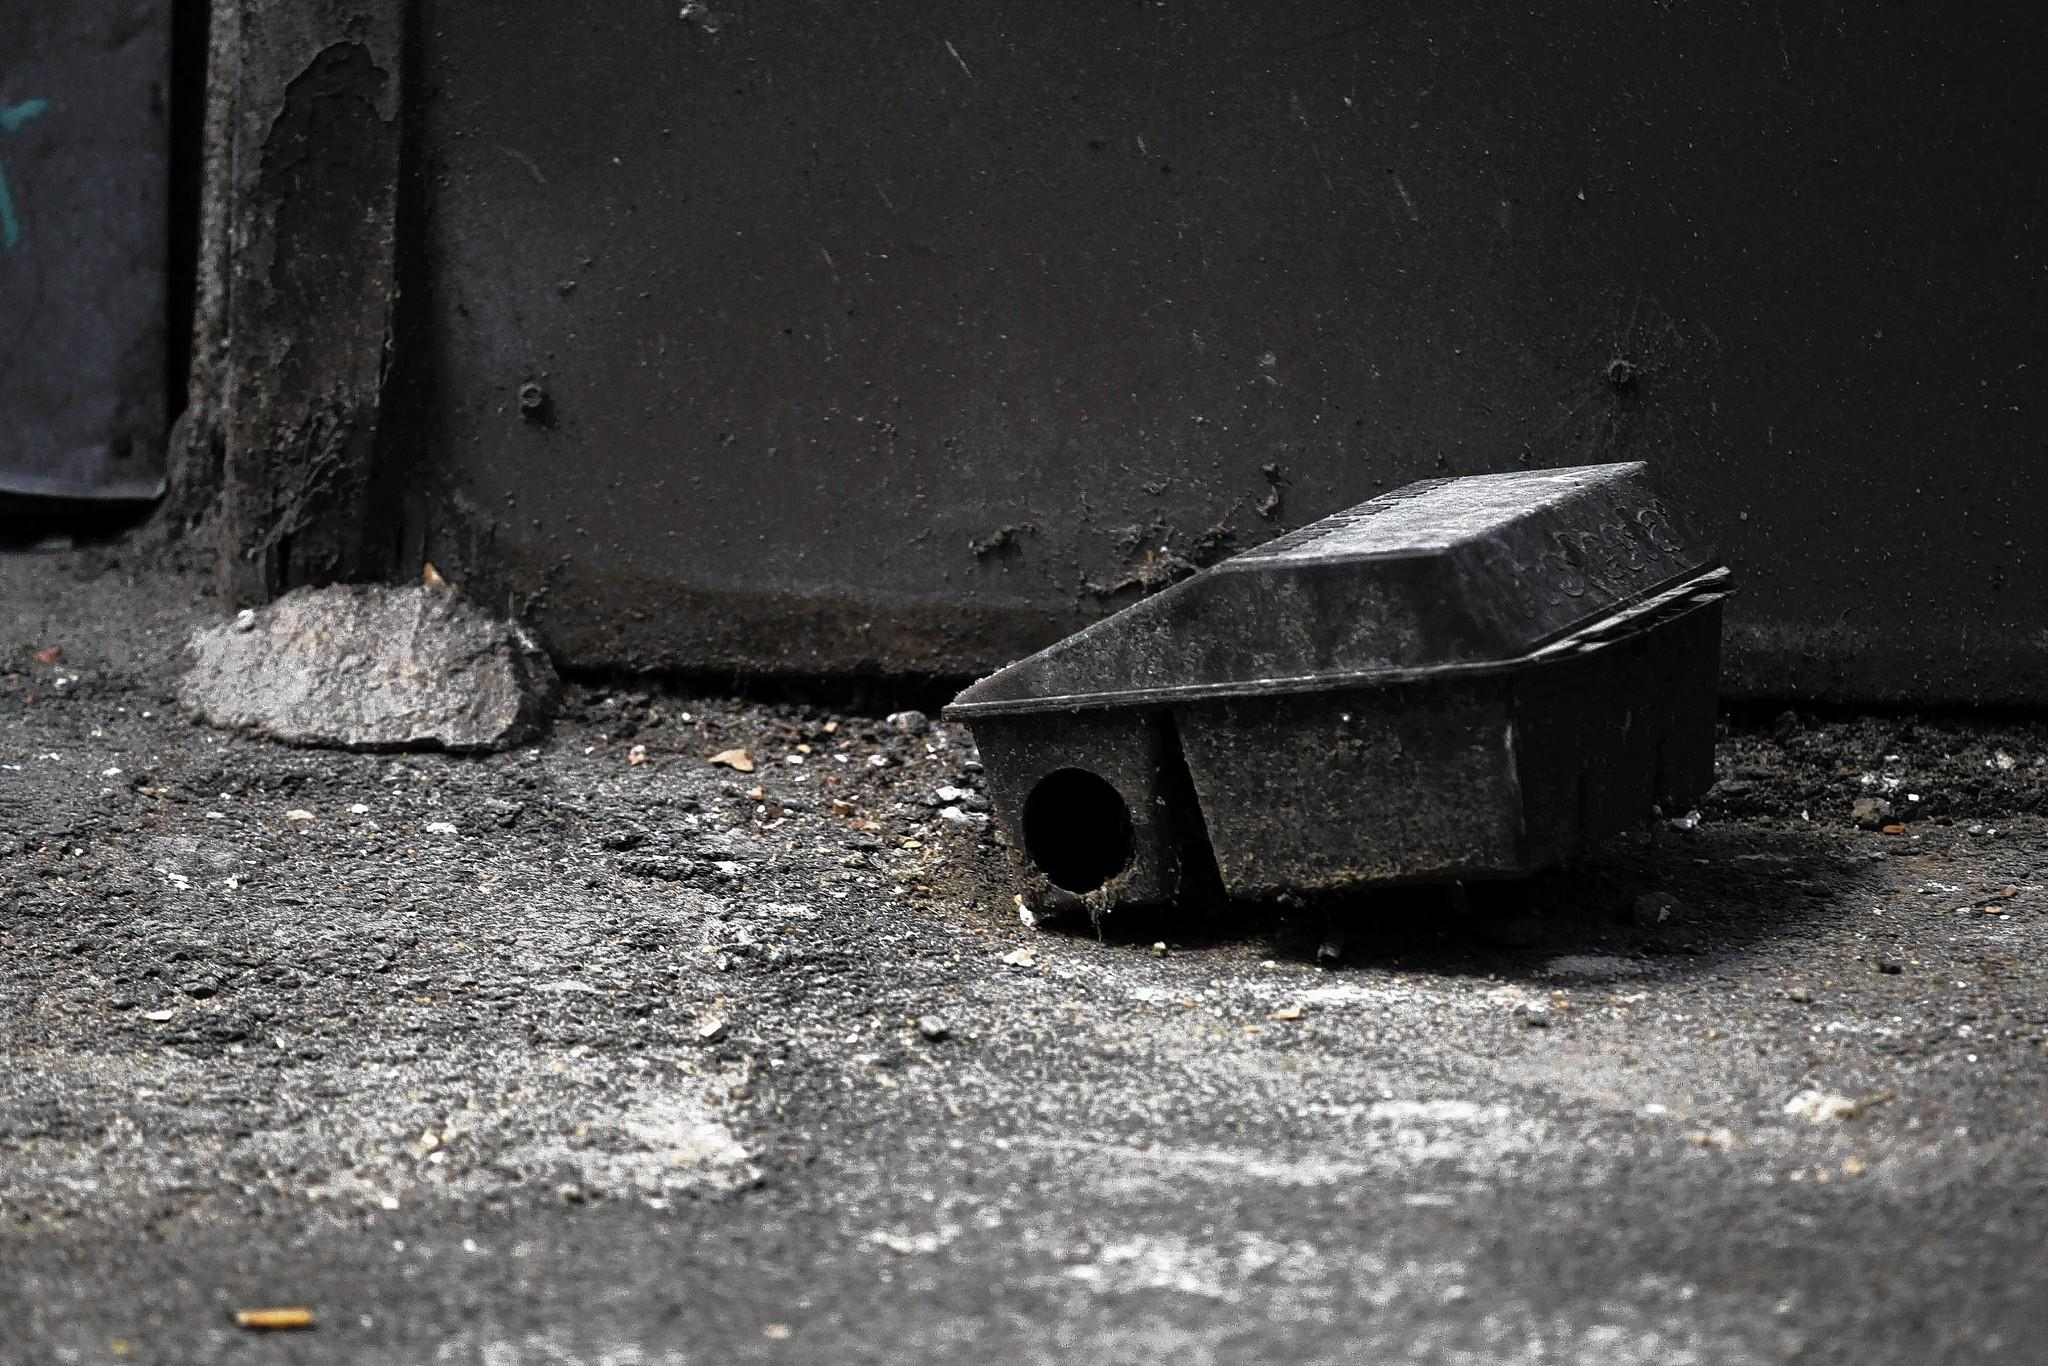 A trap waits near Lower Wacker and Lower Michigan drives in Chicago. Rats coming up pipes is uncommon but not rare.